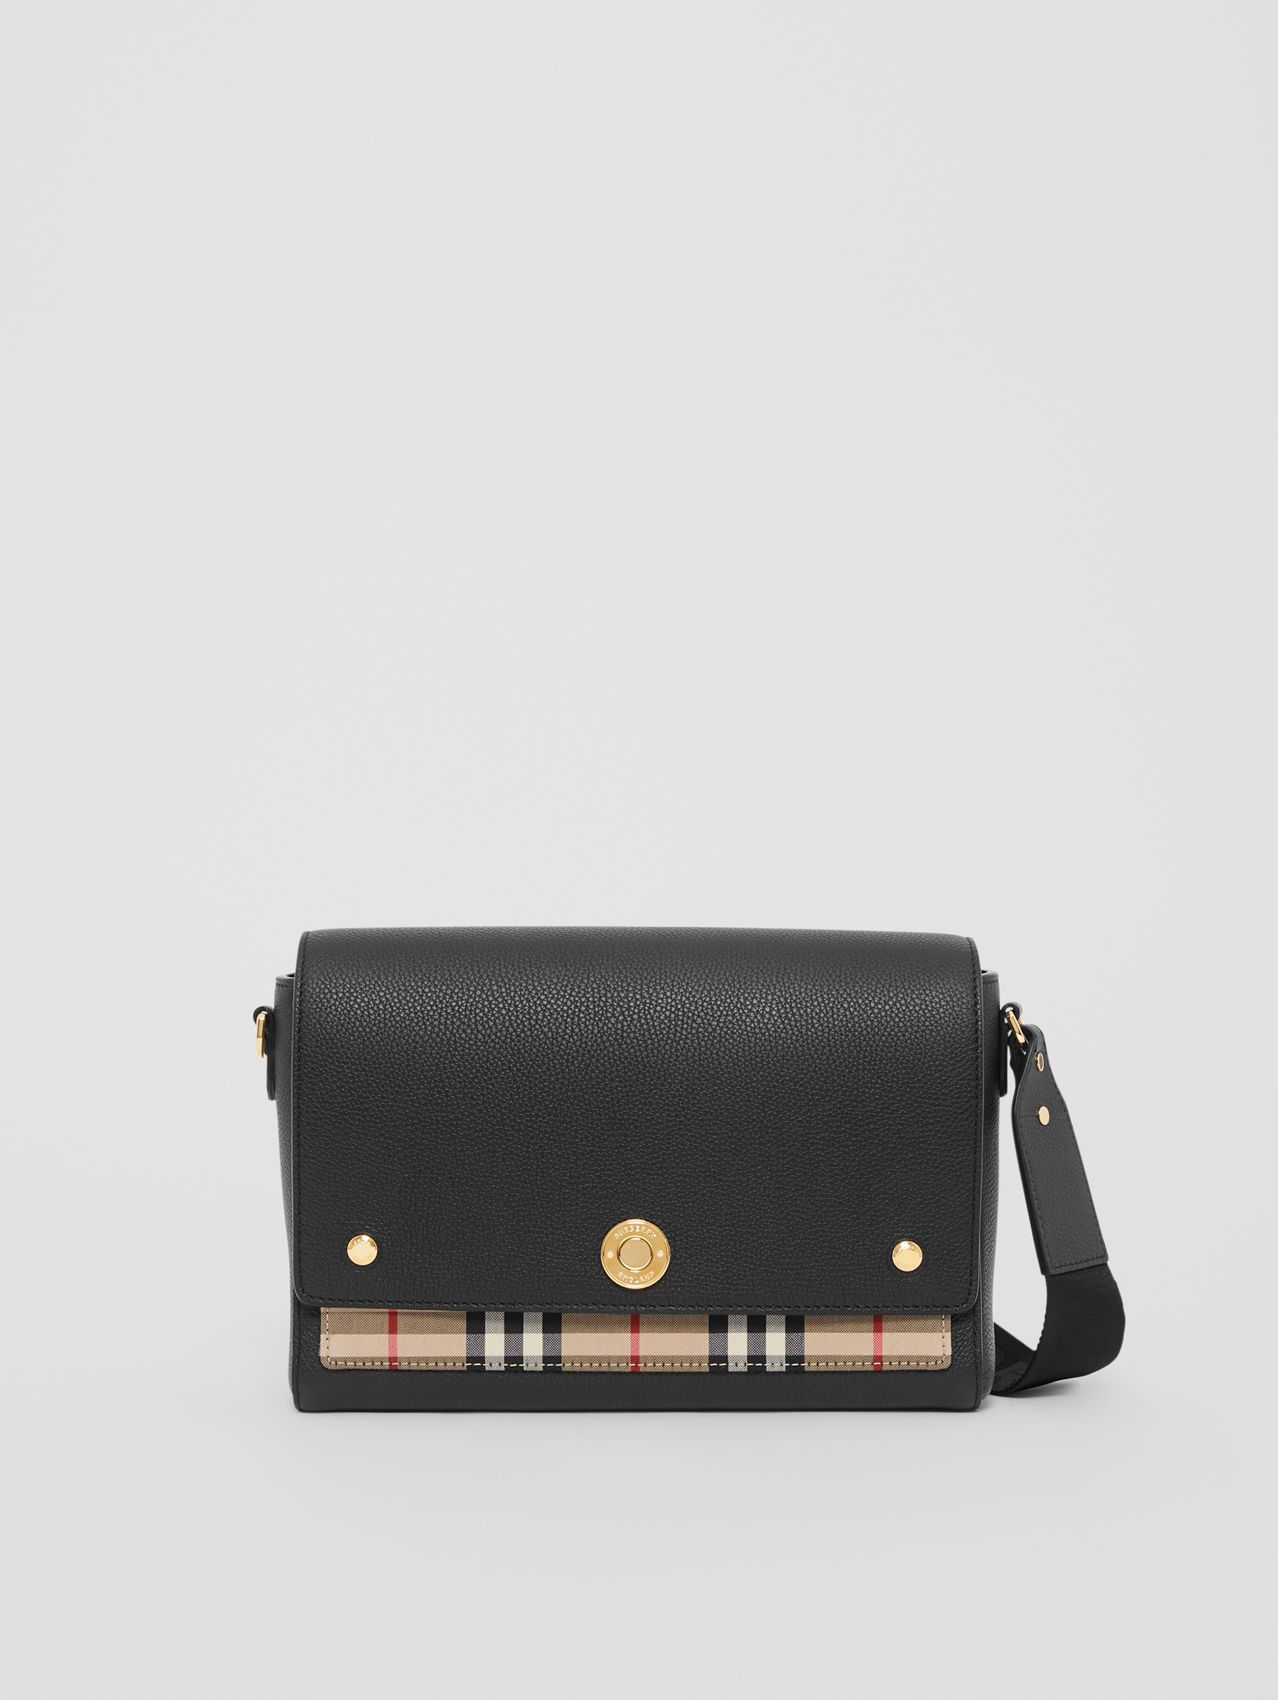 Leather and Vintage Check Note Crossbody Bag in Black